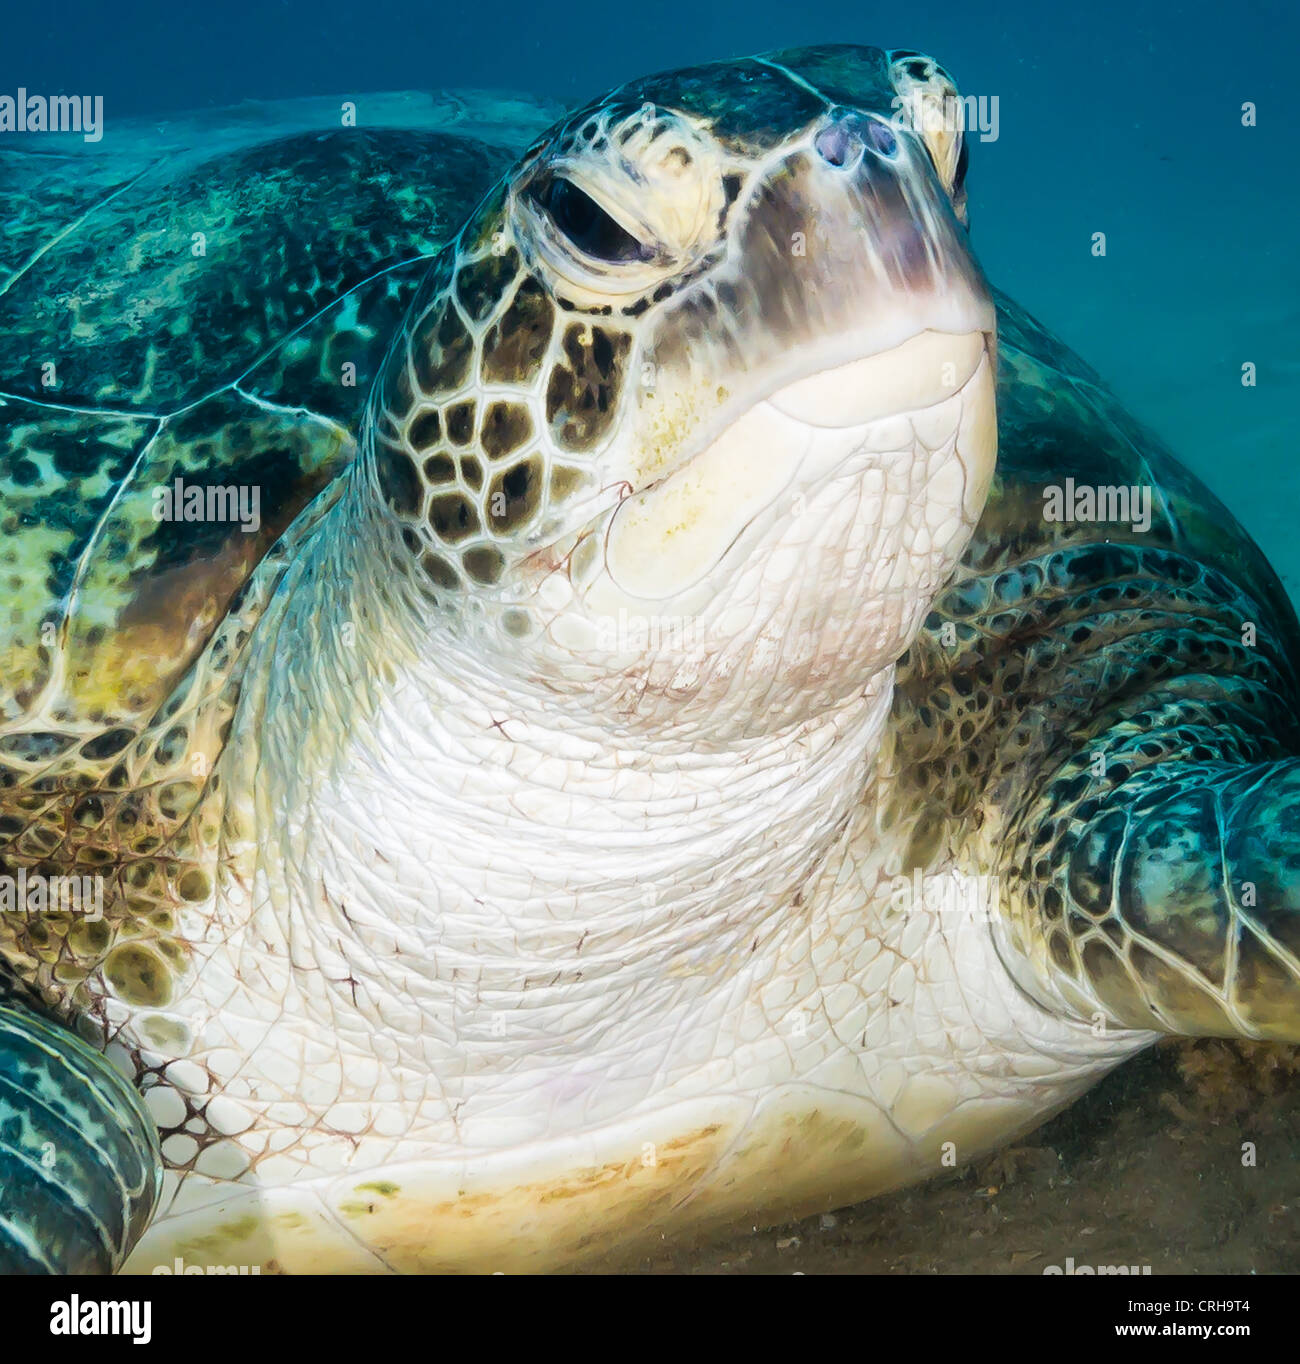 A Green turtle with a grumpy look on its faces investigates the camera close-up - Stock Image